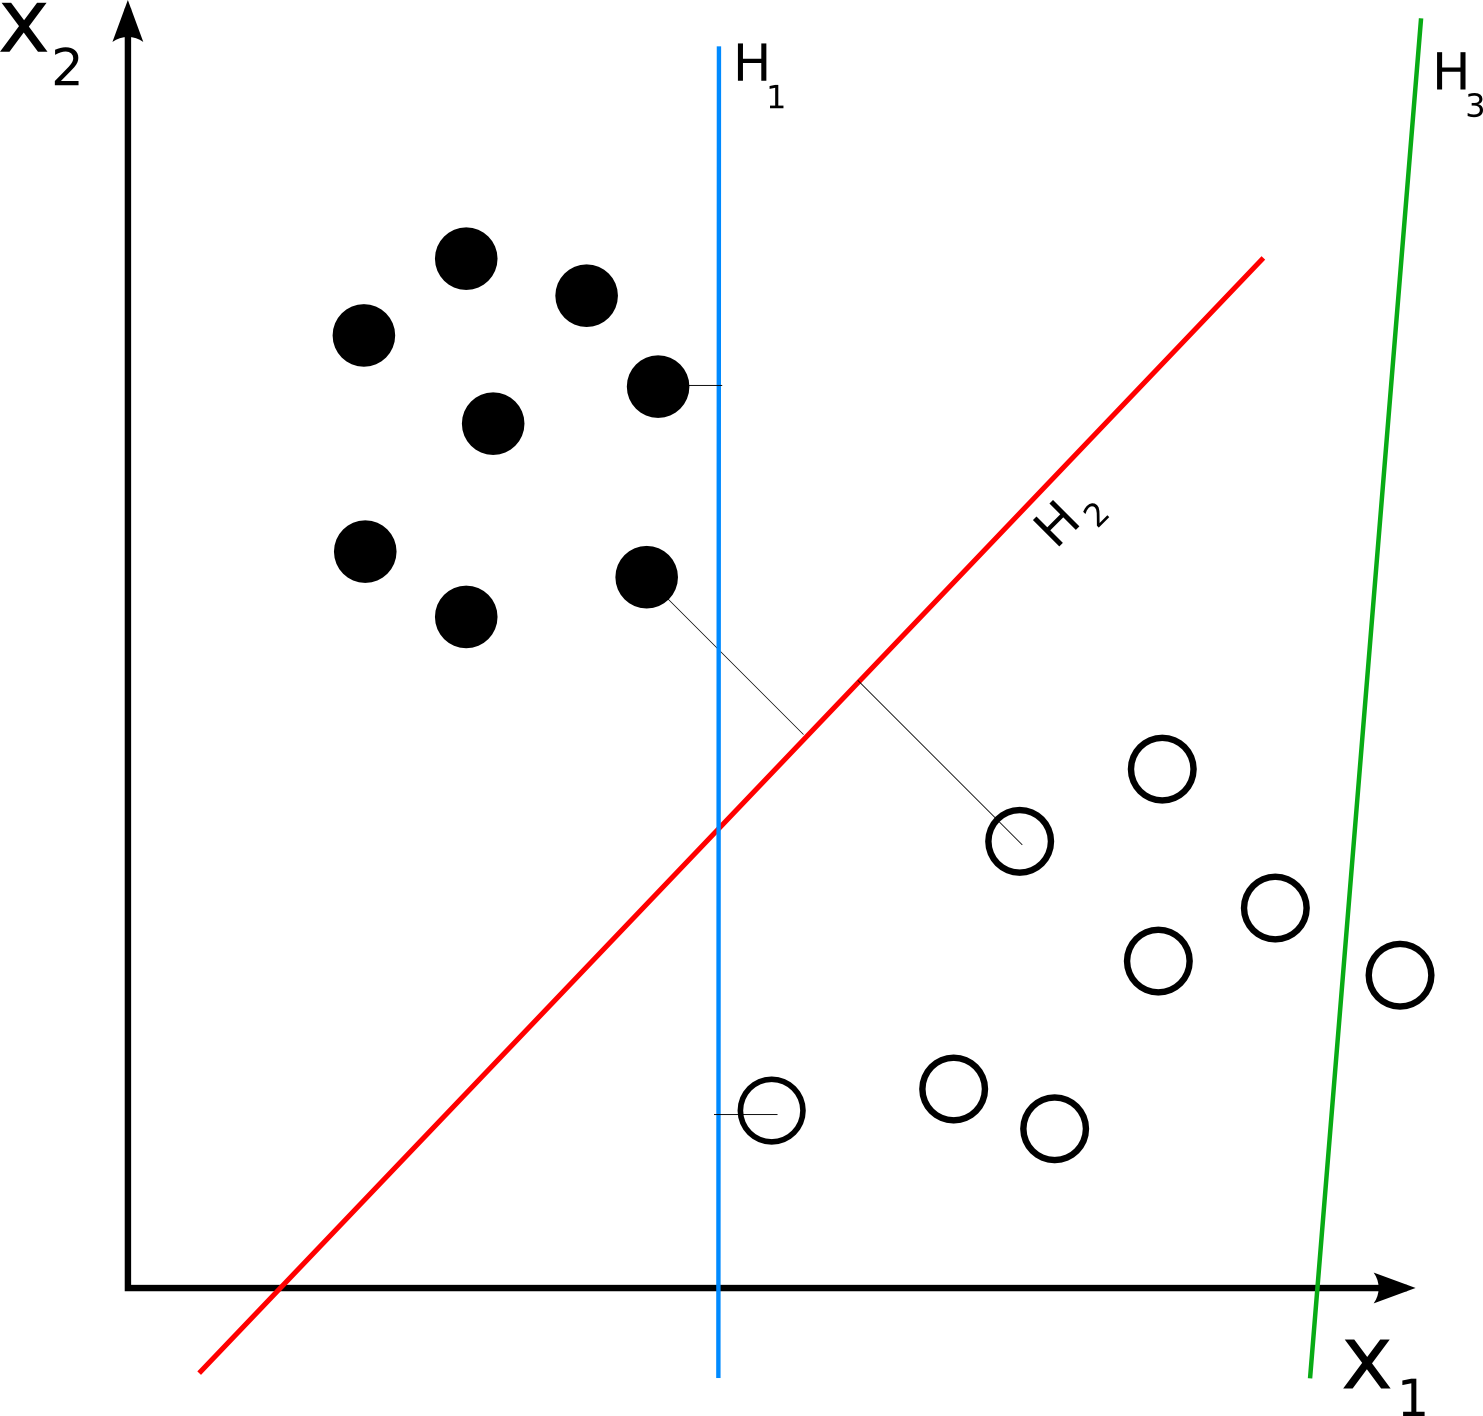 An example of binary classified data and decision boundaries used by classifiers